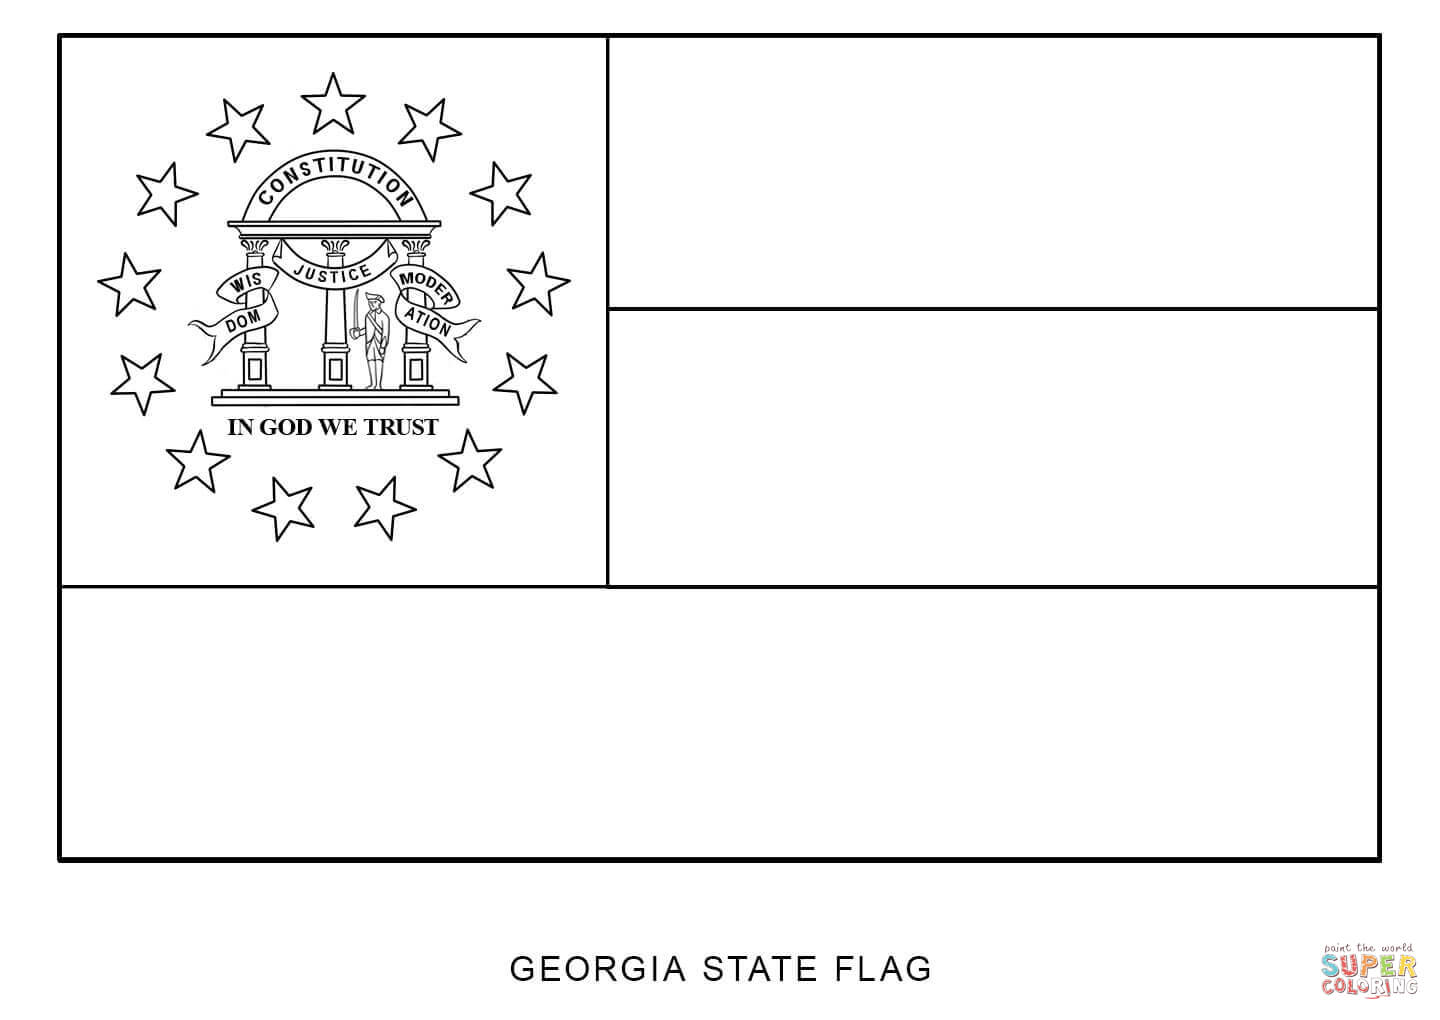 how to draw florida state flag colouring book of flags united states of america how to flag draw state florida